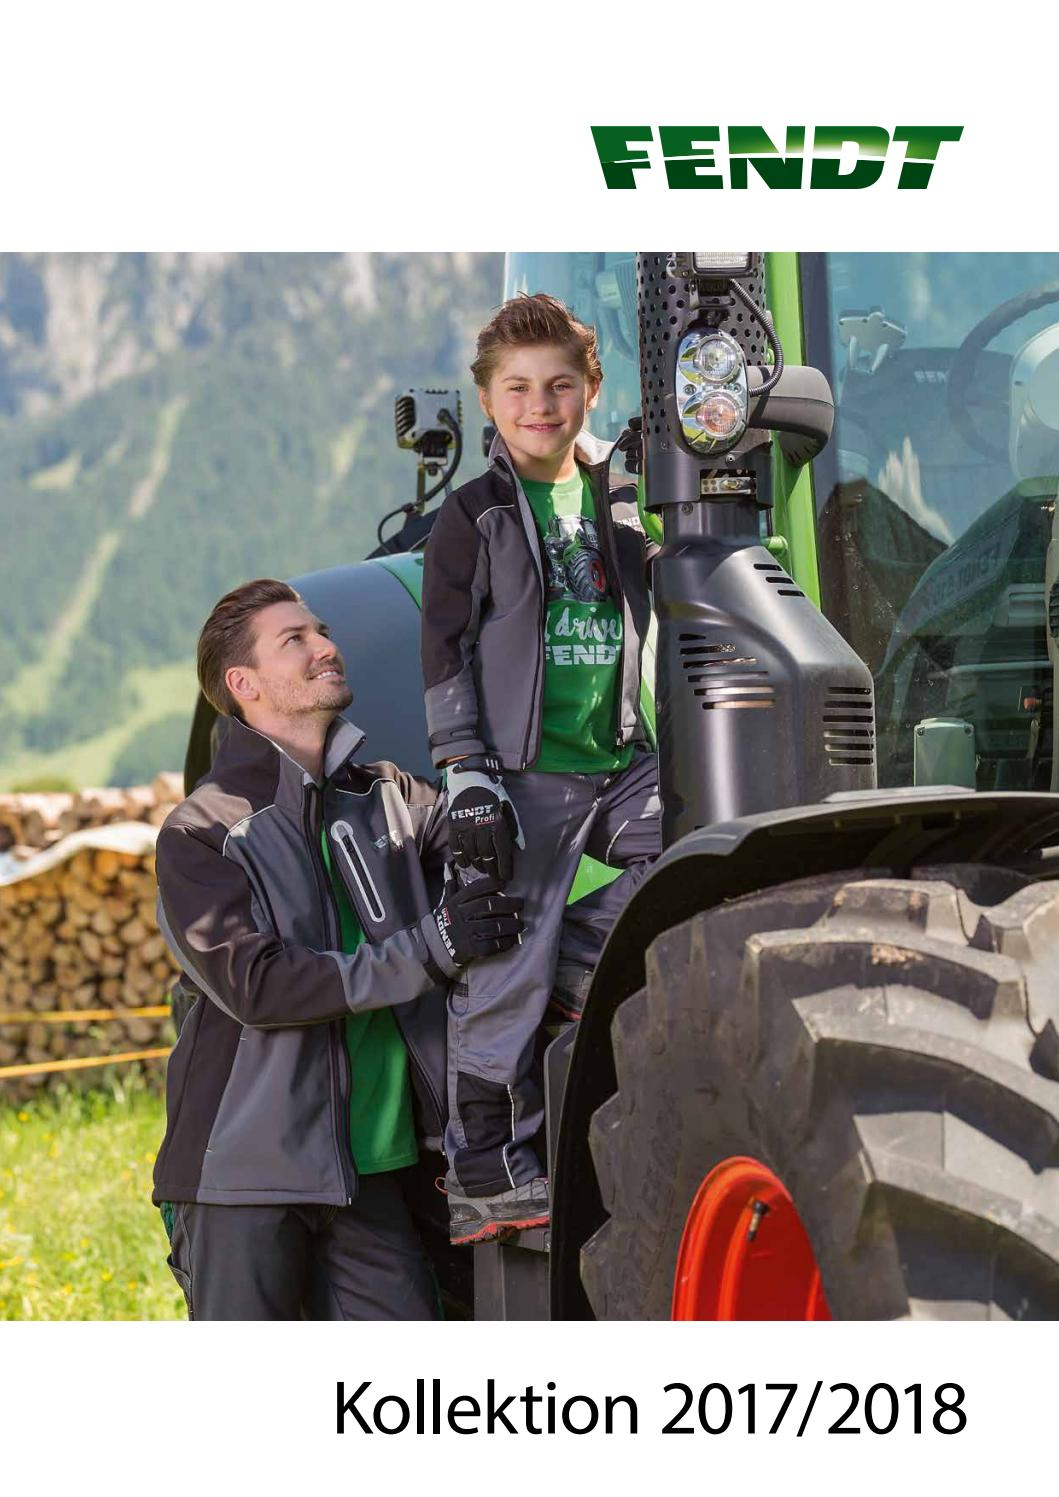 Bettwäsche Fendt Fendt Collection 2017 18 De